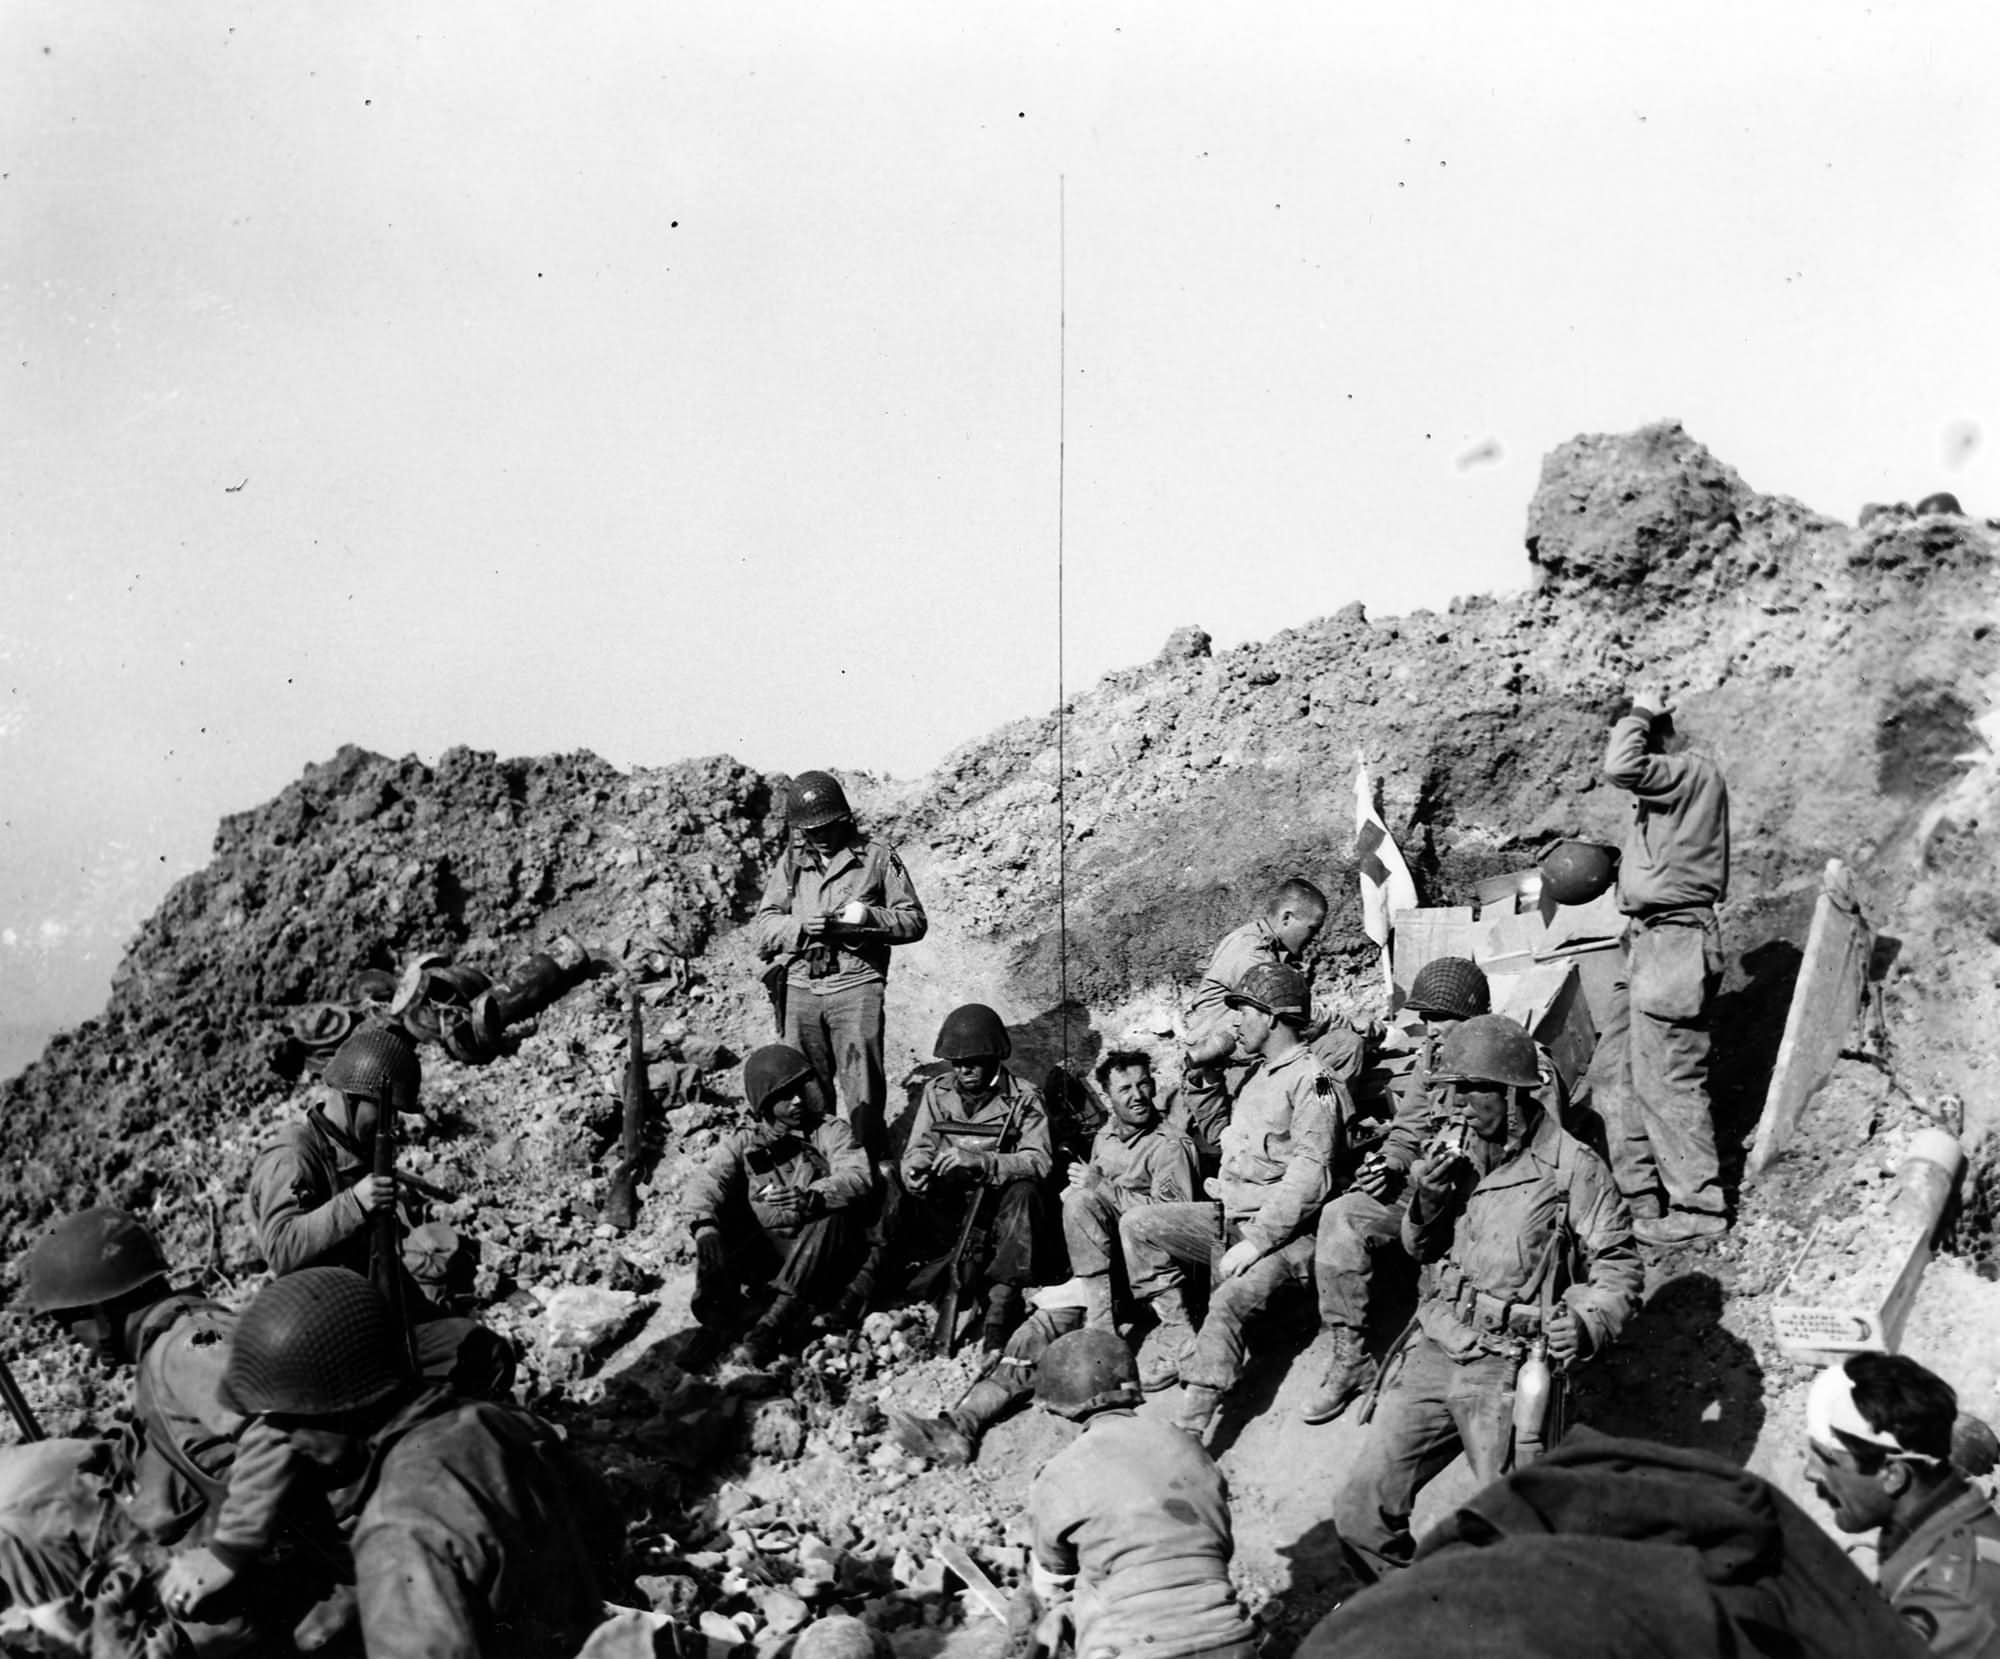 Rangers rest atop the cliffs at Pointe du Hoc 6 June 1944